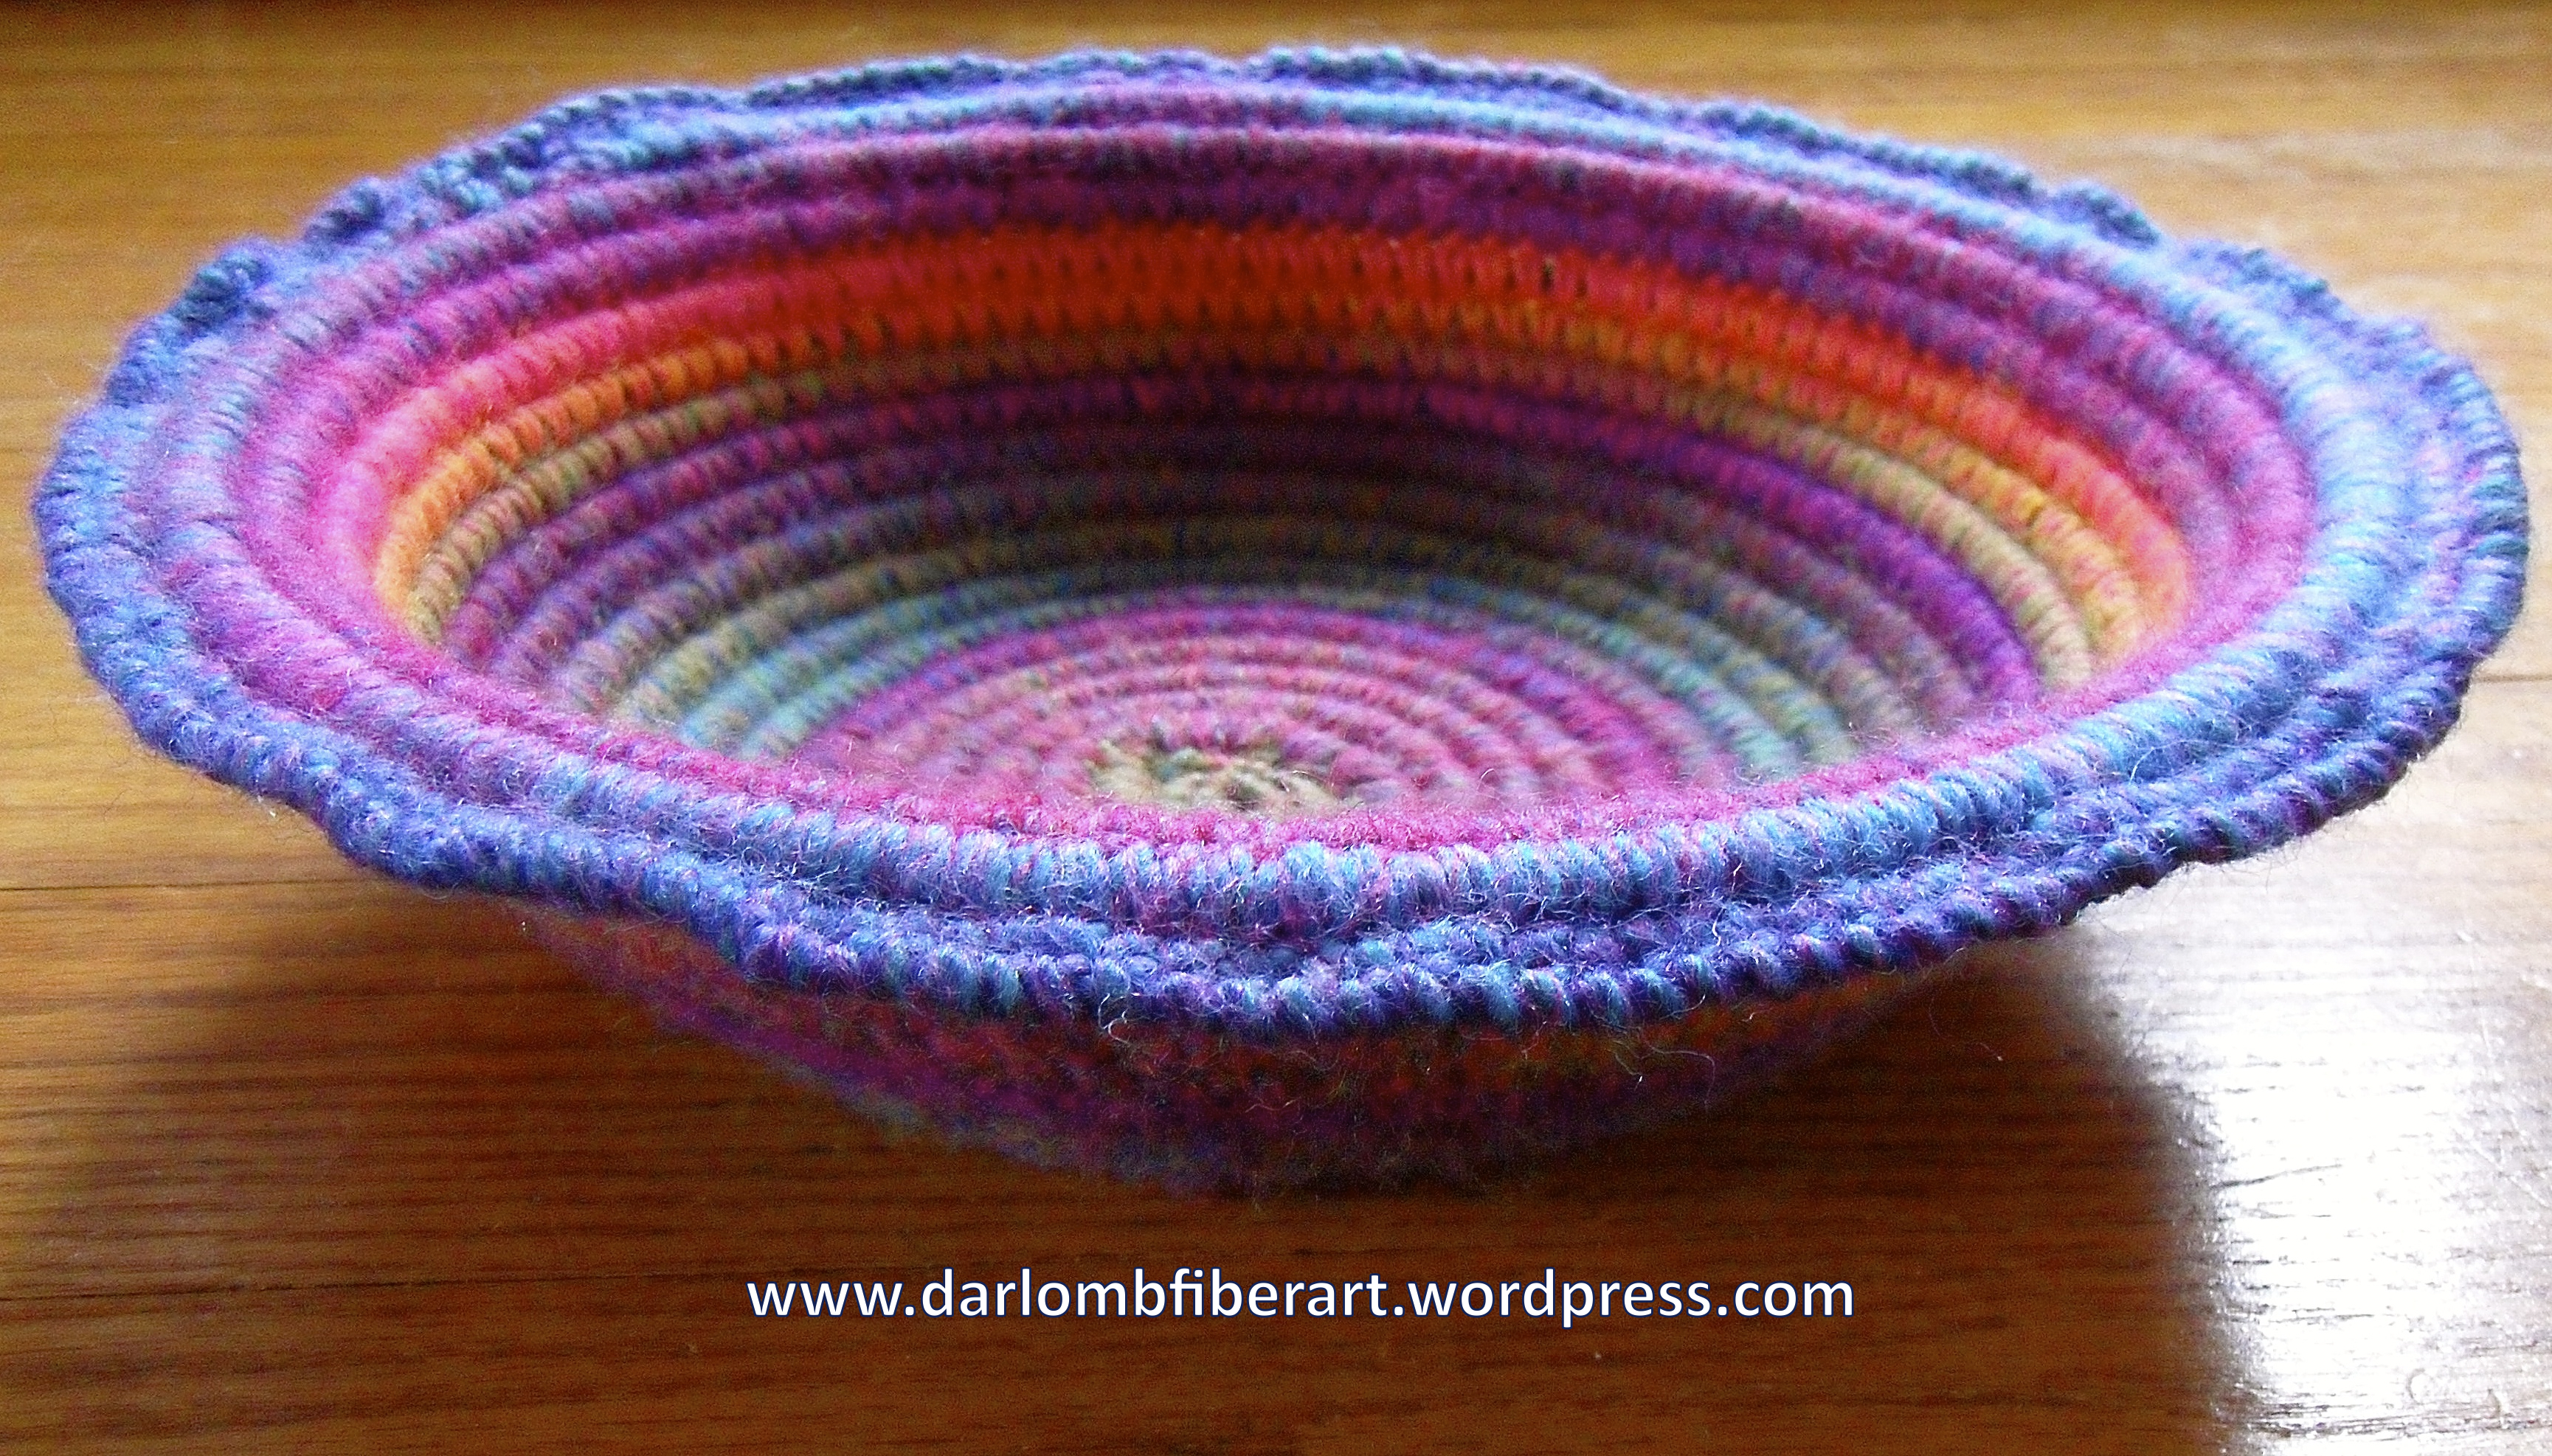 Crochet Coiled Basket Guidelines & Ideas | Fiber Art Reflections